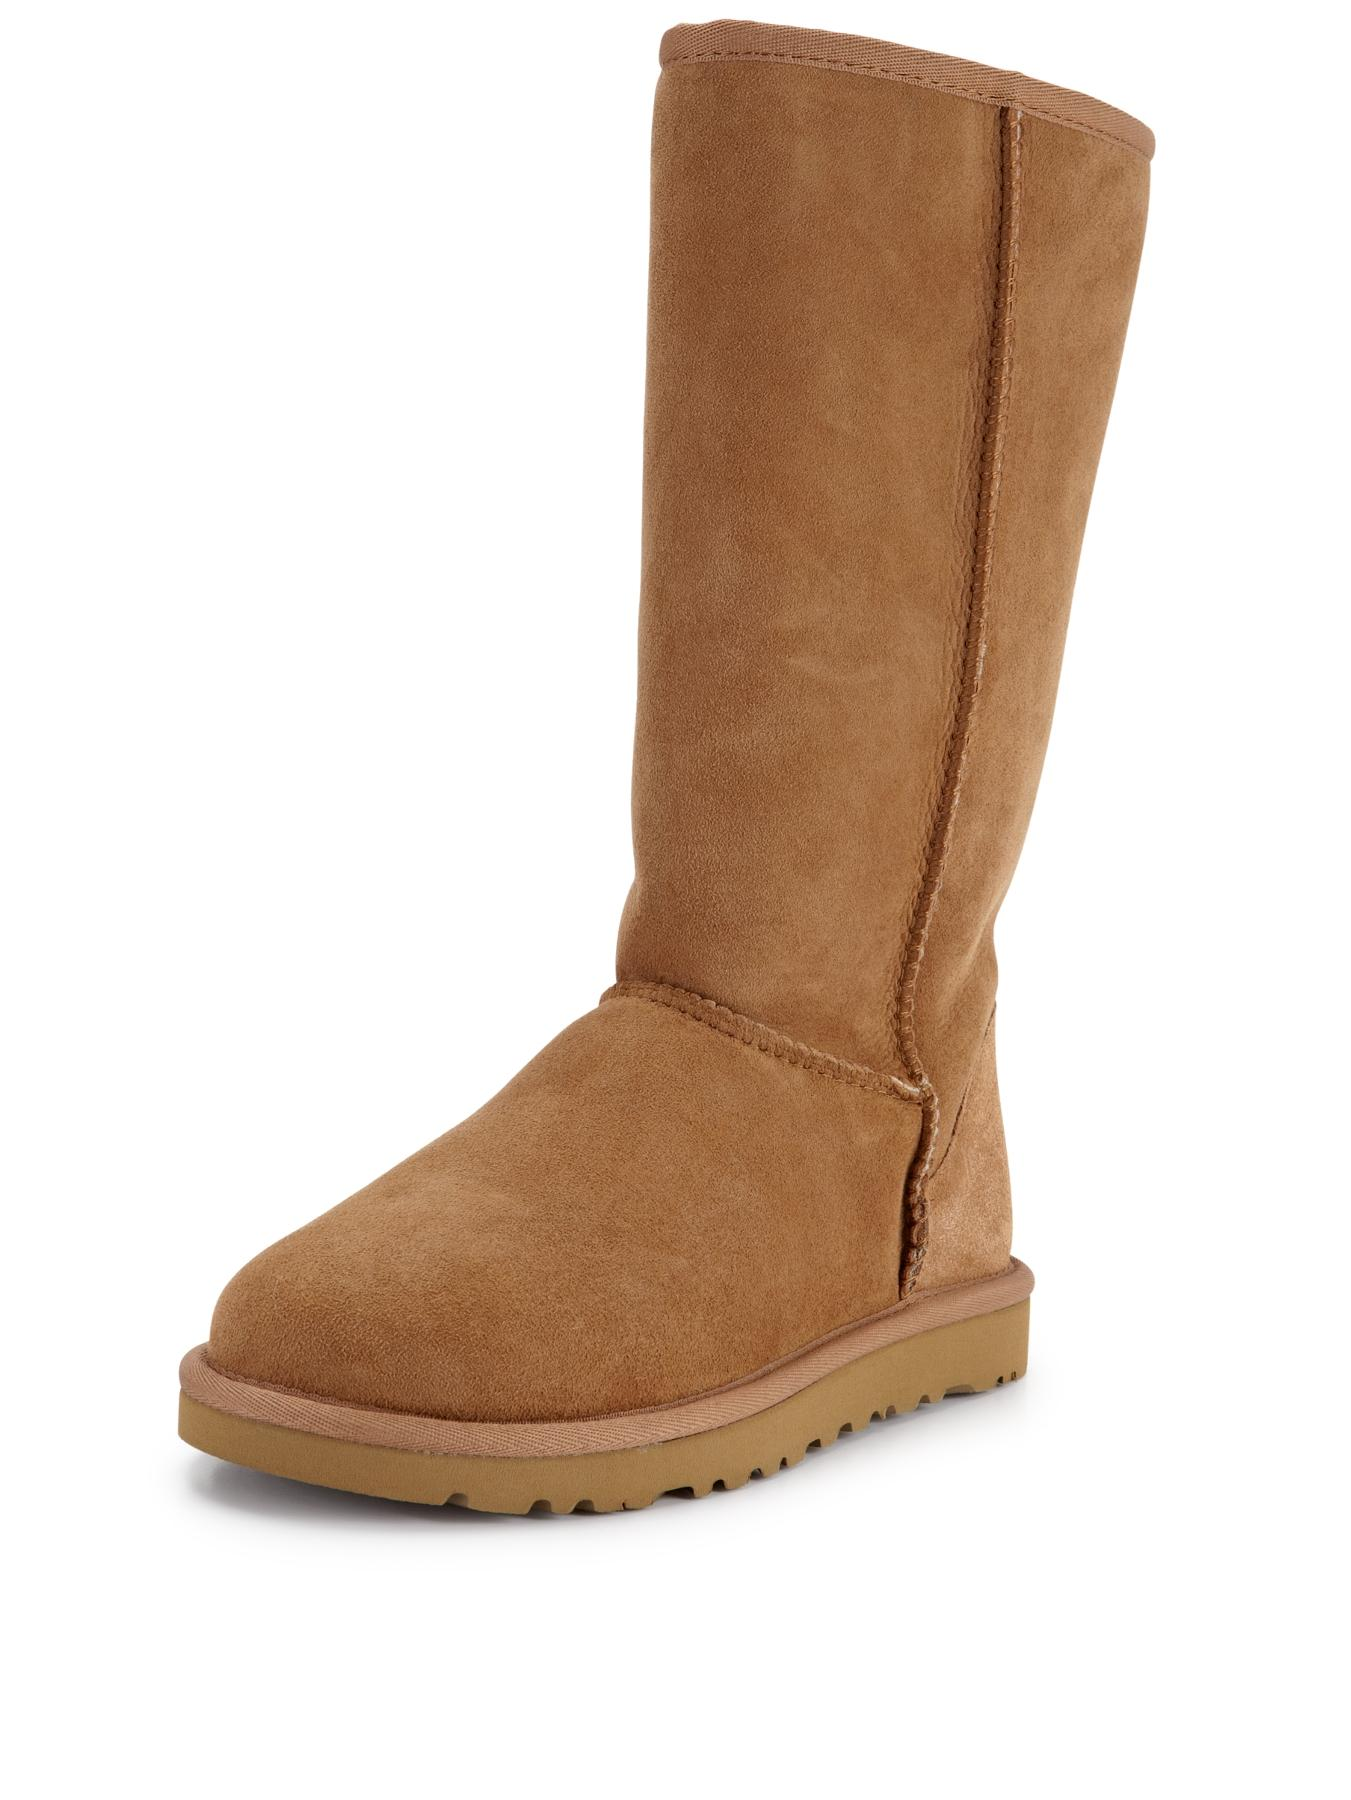 Classic Tall Boots - Chestnut